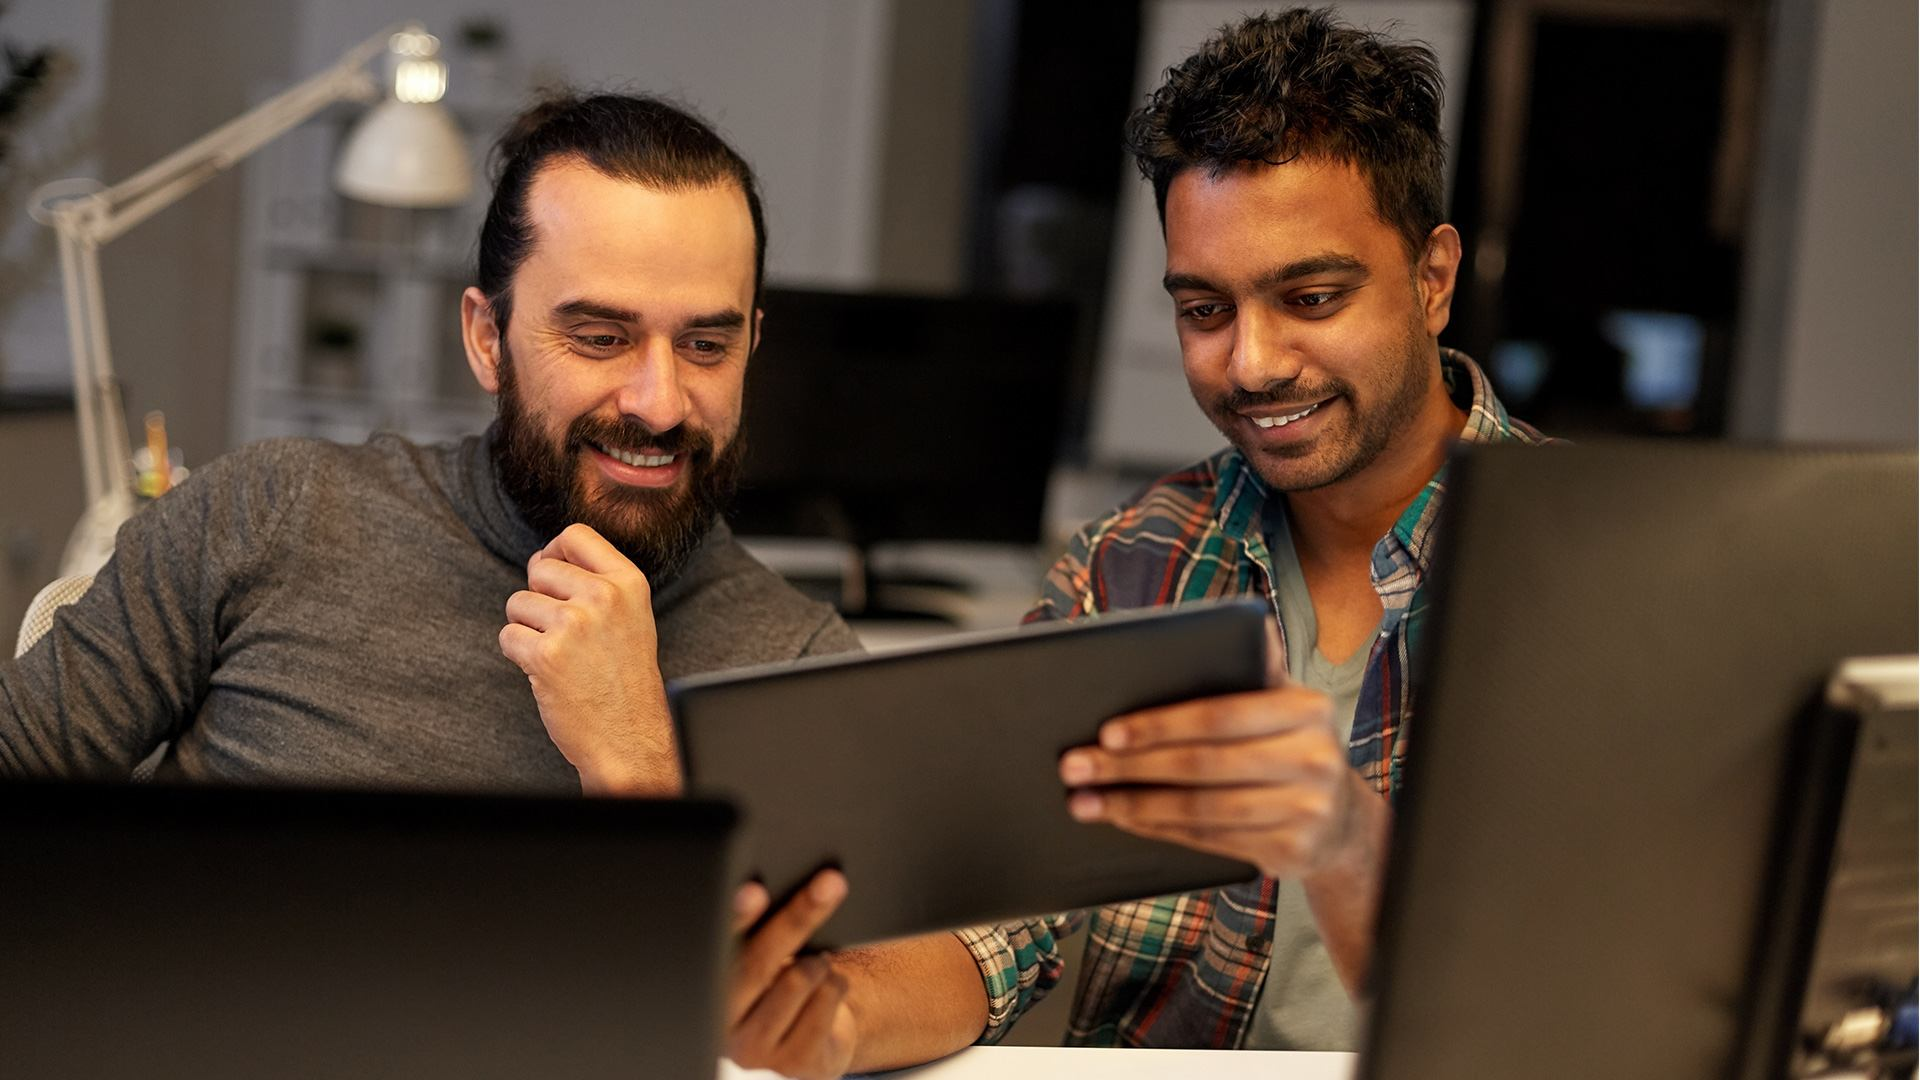 Two people at work smiling, looking at a tablet